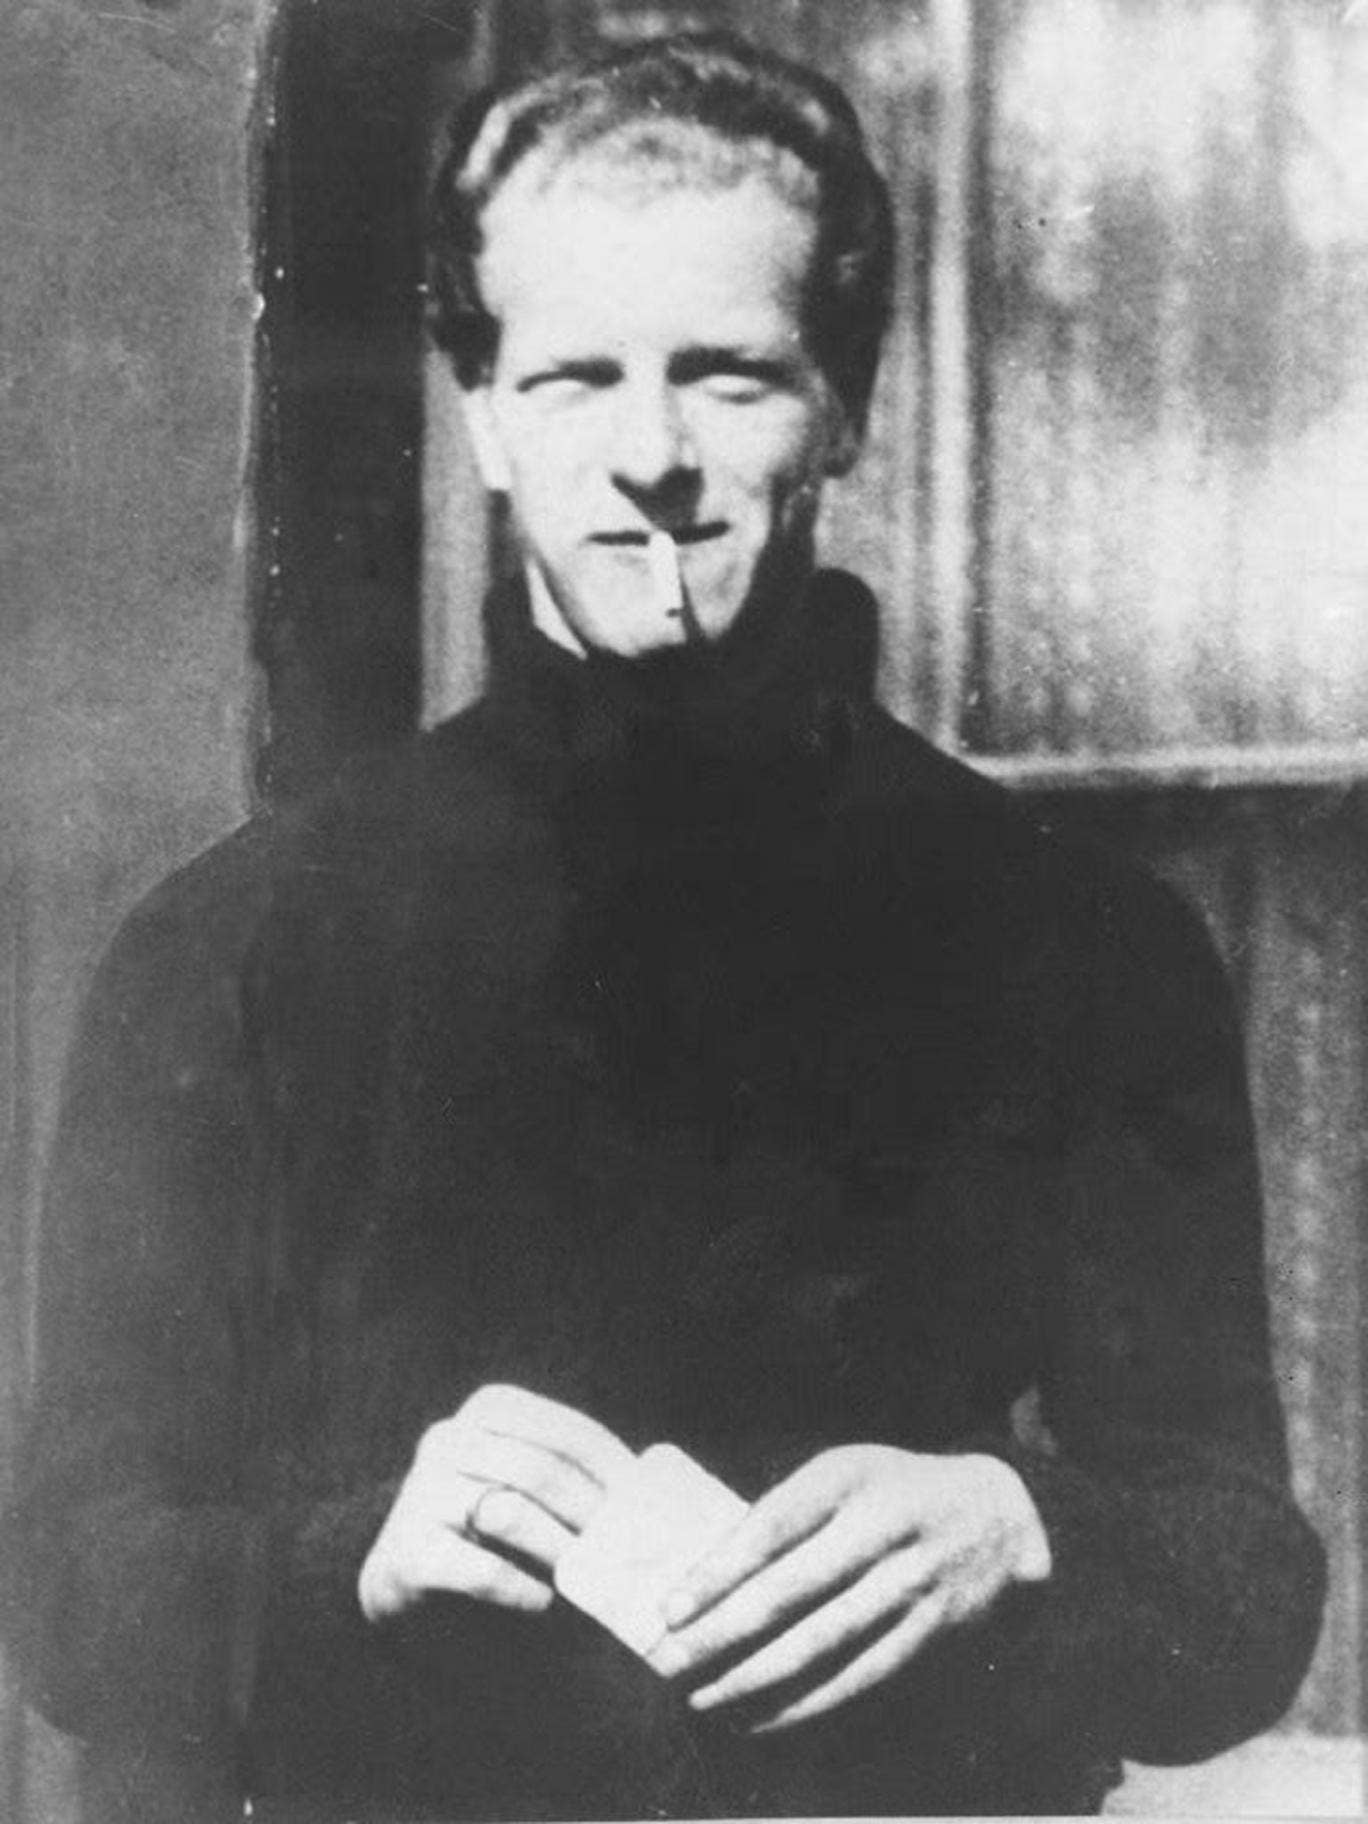 The campaign to abolish the death penalty was fuelled by famous cases such as that of Derek Bentley, who was executed in 1953